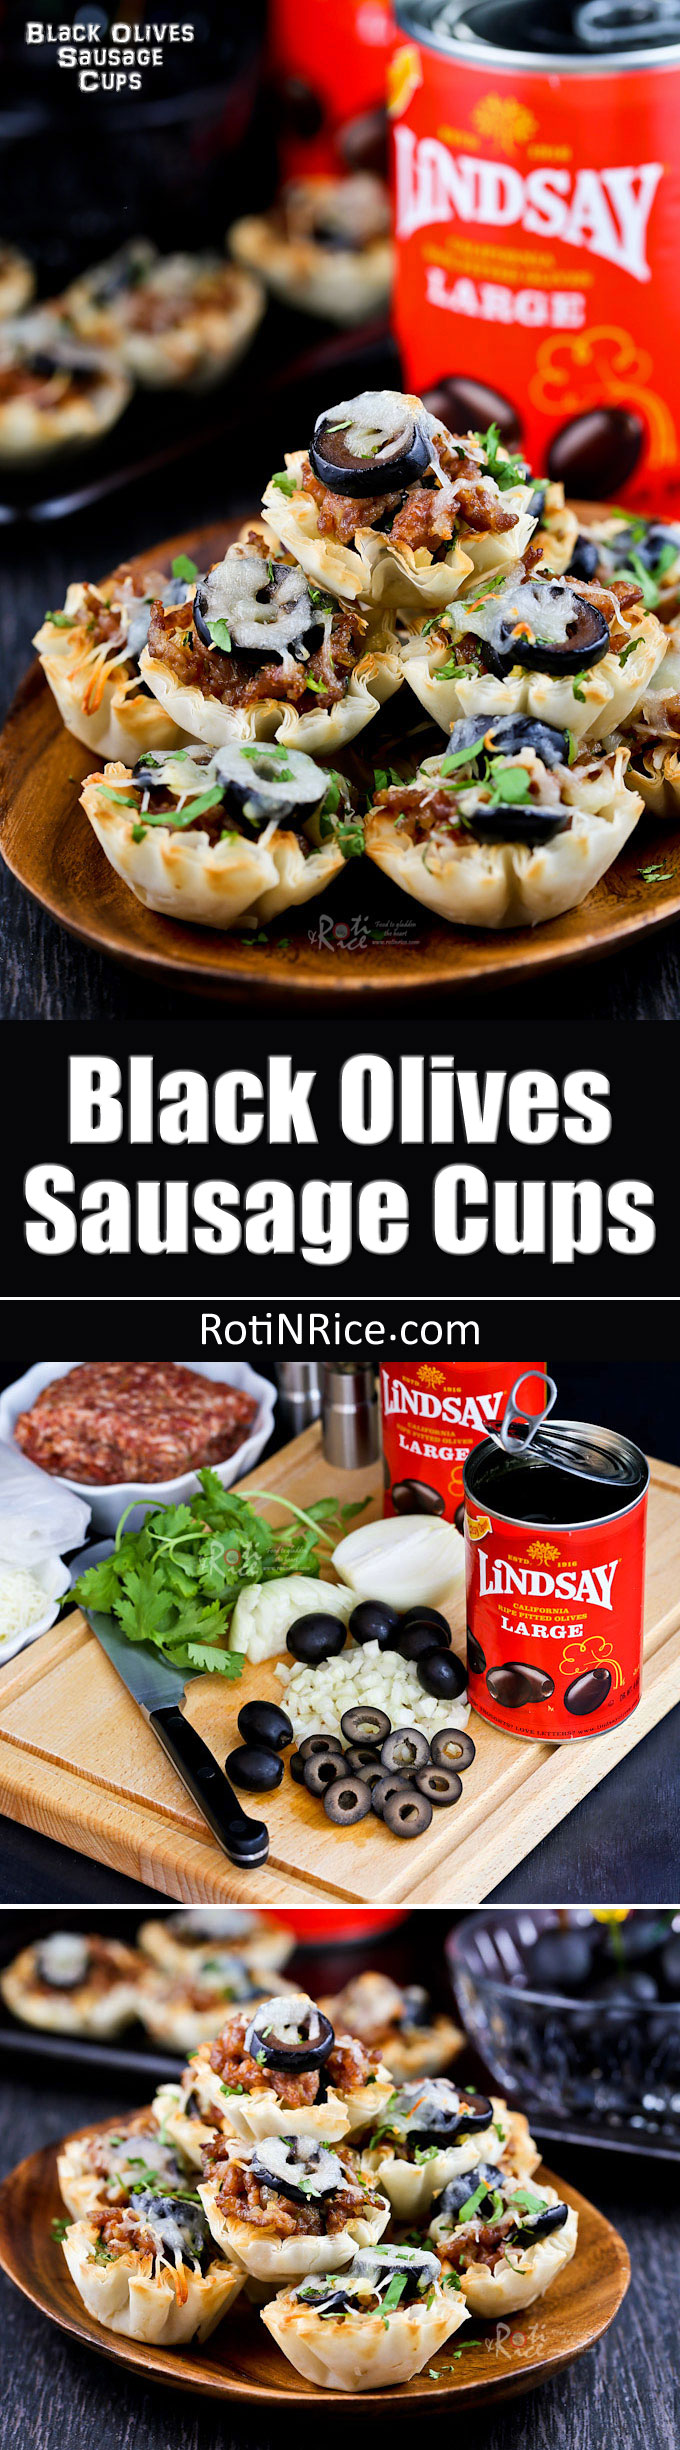 These tasty Black Olives Sausage Cups are the perfect appetizers for Game Day or any social gathering. Very quick and easy to prepare. #TeamLindsay #GameDayMoment #ad #sponsored   RotiNRice.com